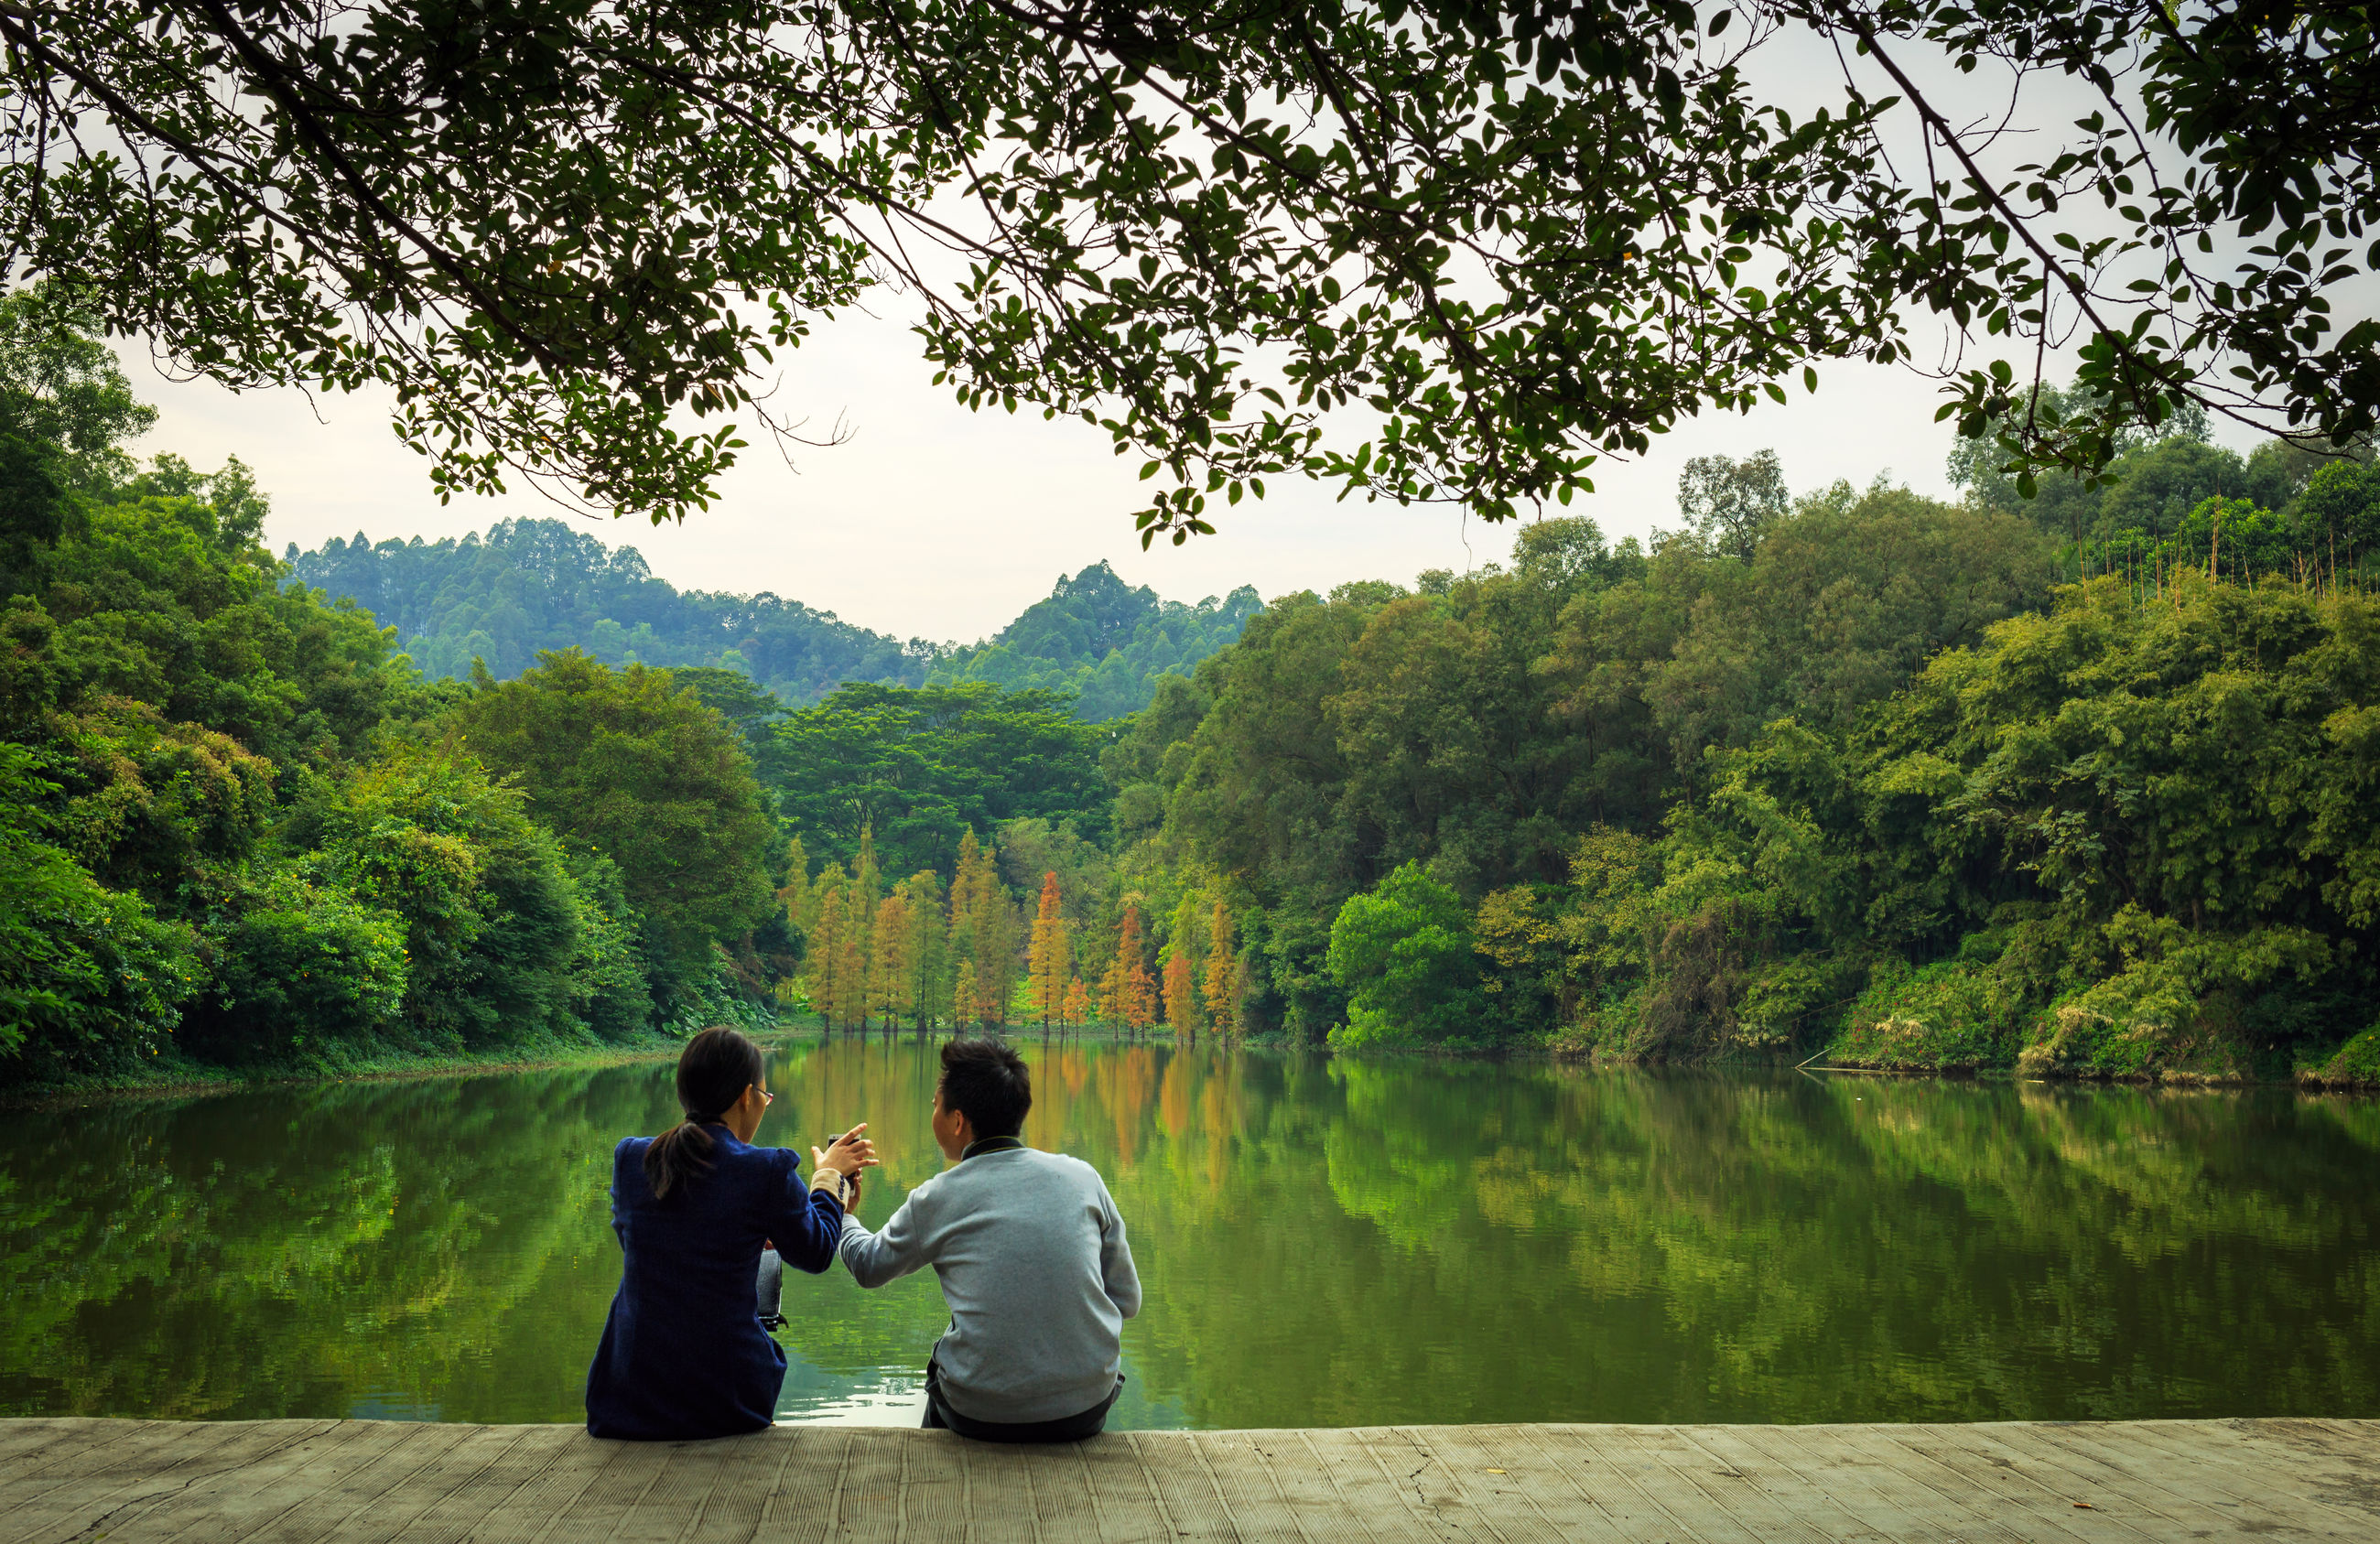 tree, lifestyles, leisure activity, rear view, tranquility, water, men, tranquil scene, lake, scenics, nature, casual clothing, beauty in nature, person, sitting, relaxation, green color